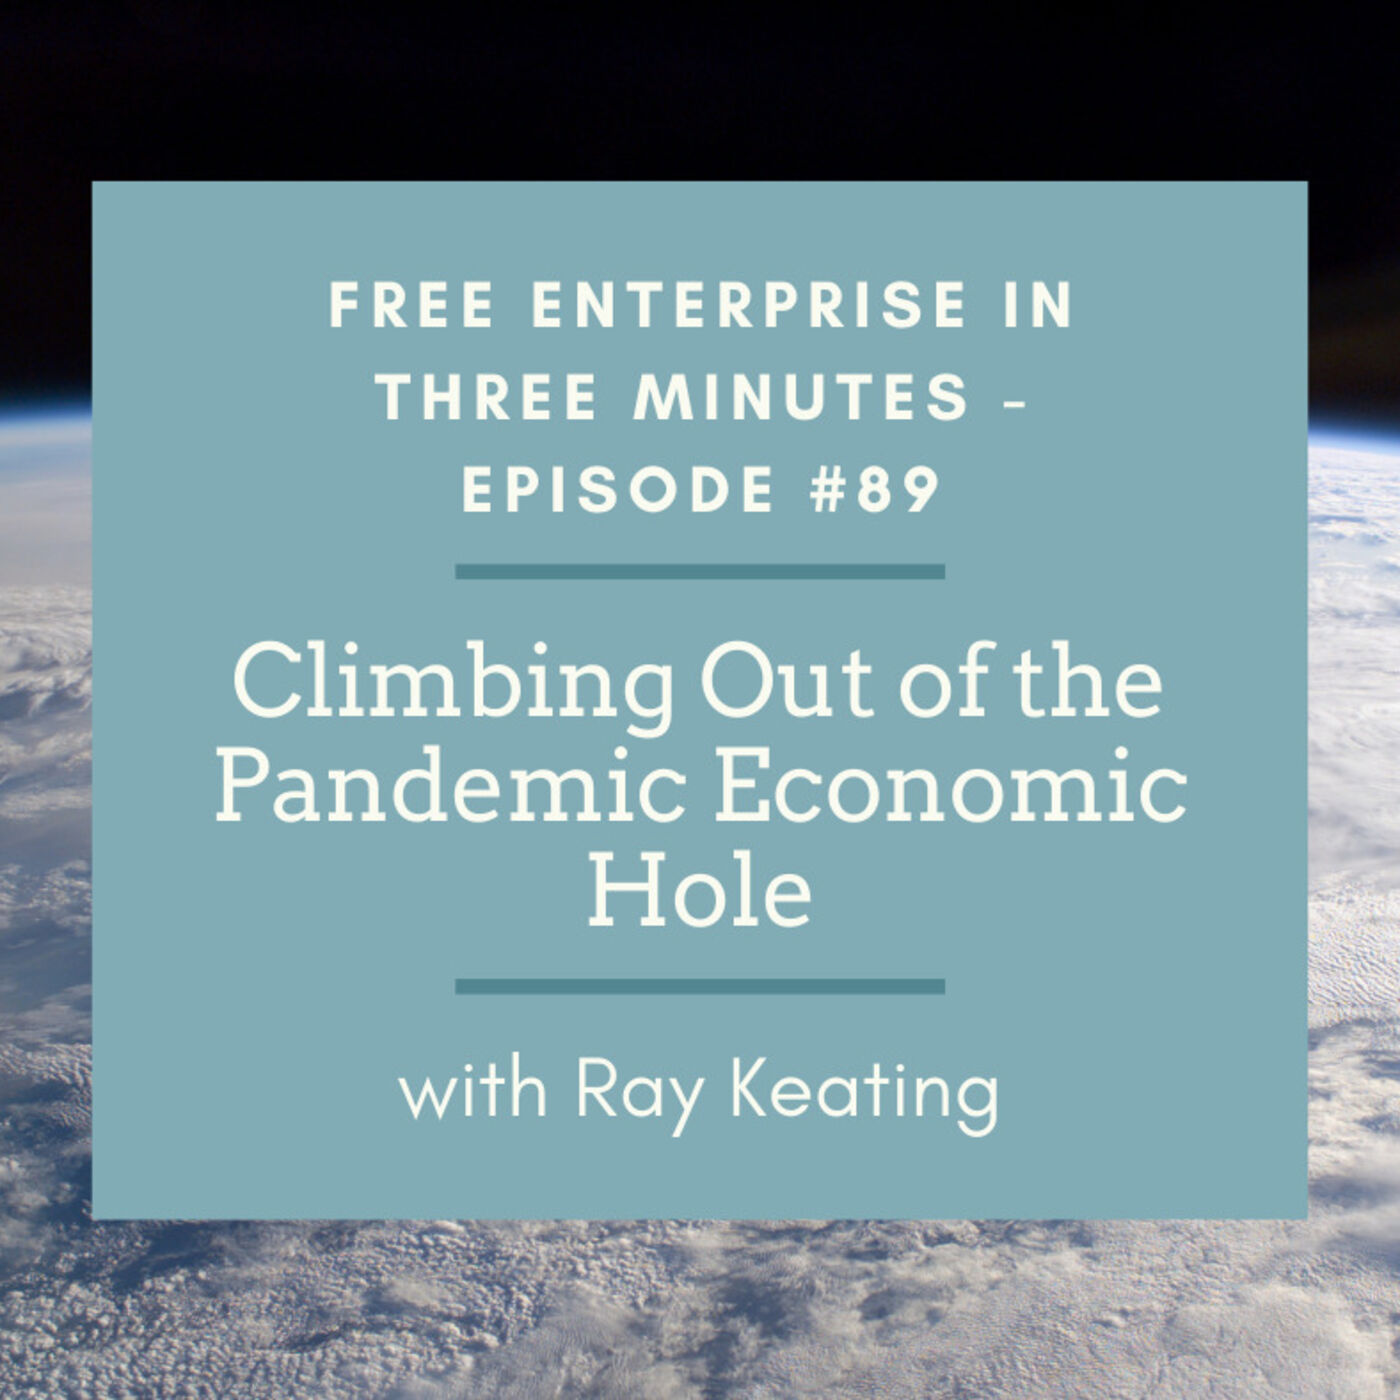 Episode #89: Climbing Out of the Pandemic Economic Hole